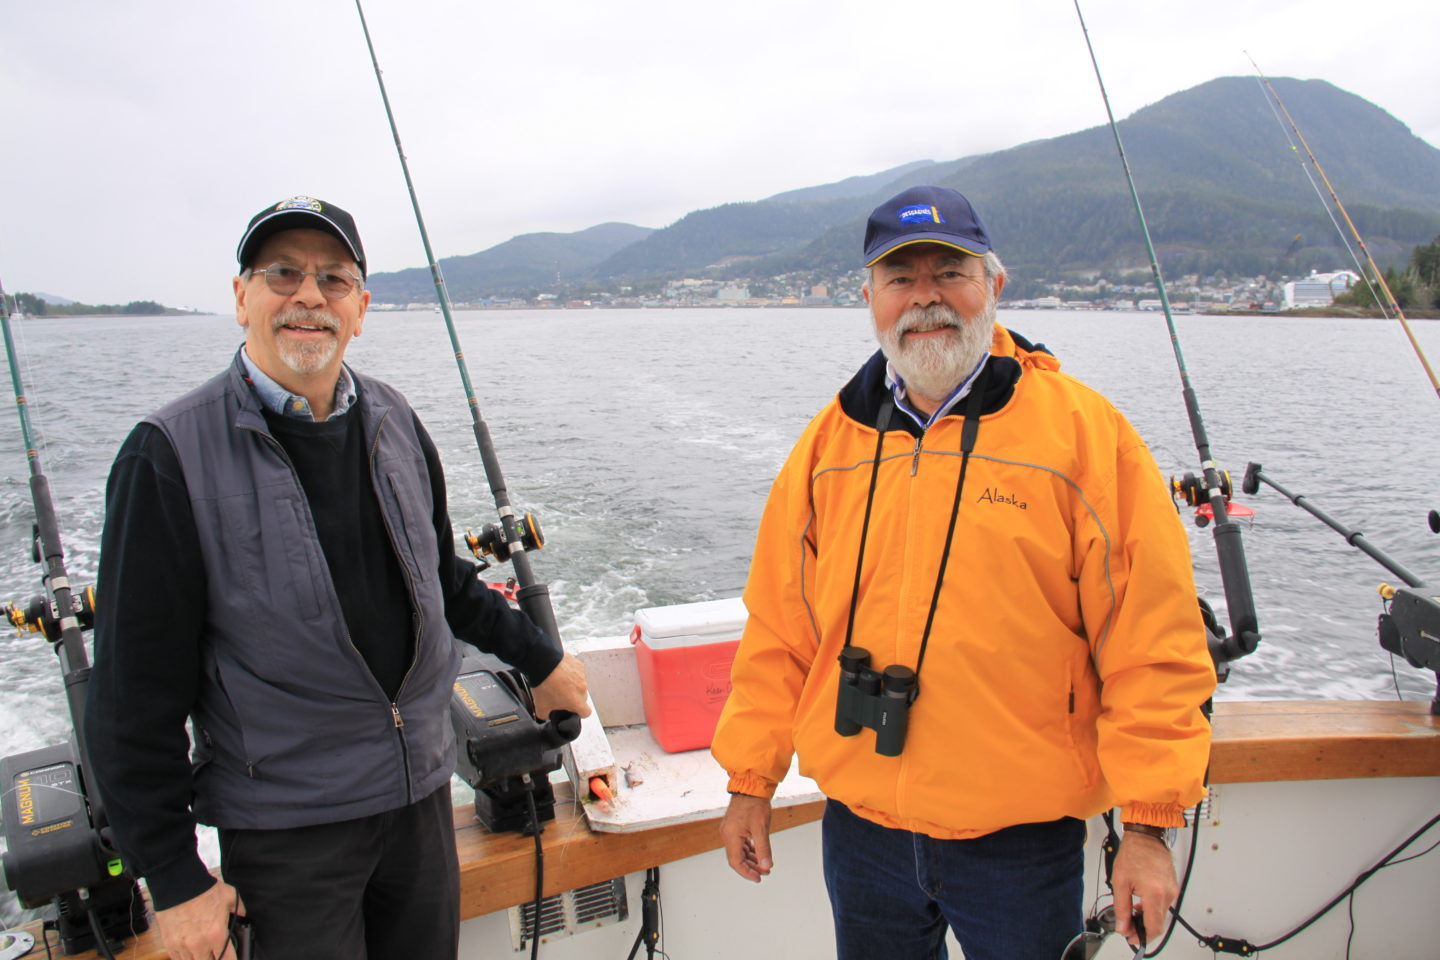 Denis and Louis-Simon out salmon fishing near Ketchikan during our Alaska Cruise with Princess Cruises